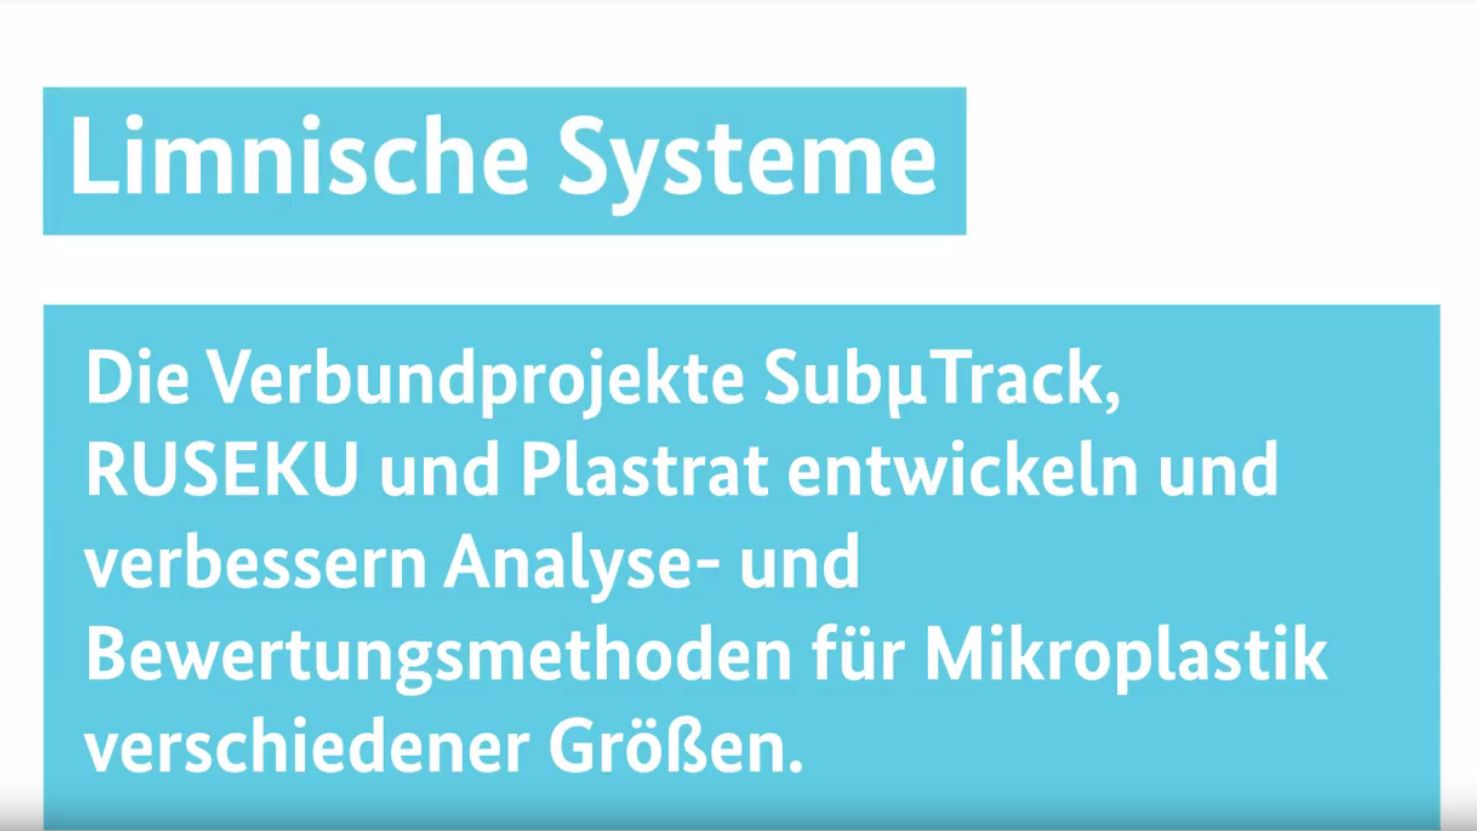 Video: Limnische Systeme 2